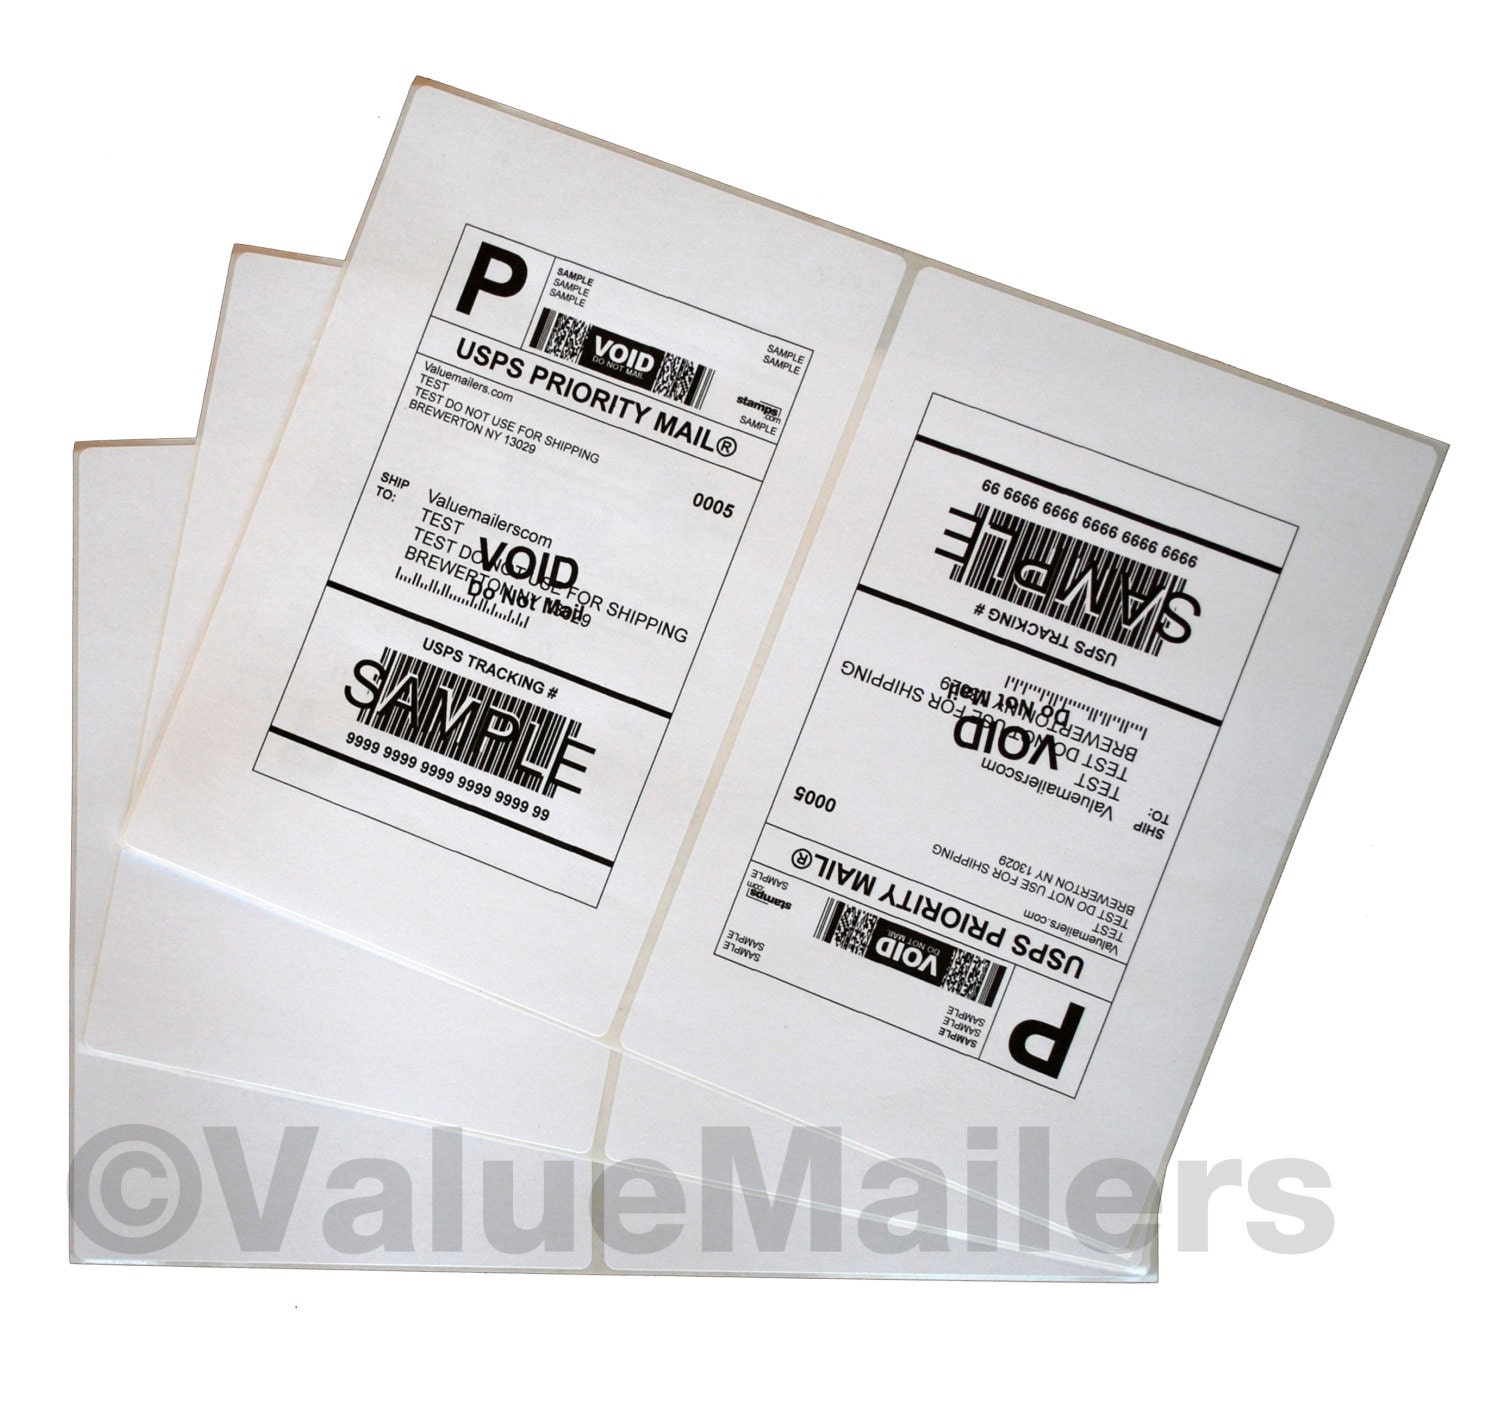 200 Rounded Corner Shipping Labels 85x55 For Etsy Paypal Circuit Breaker Ebay Amazon